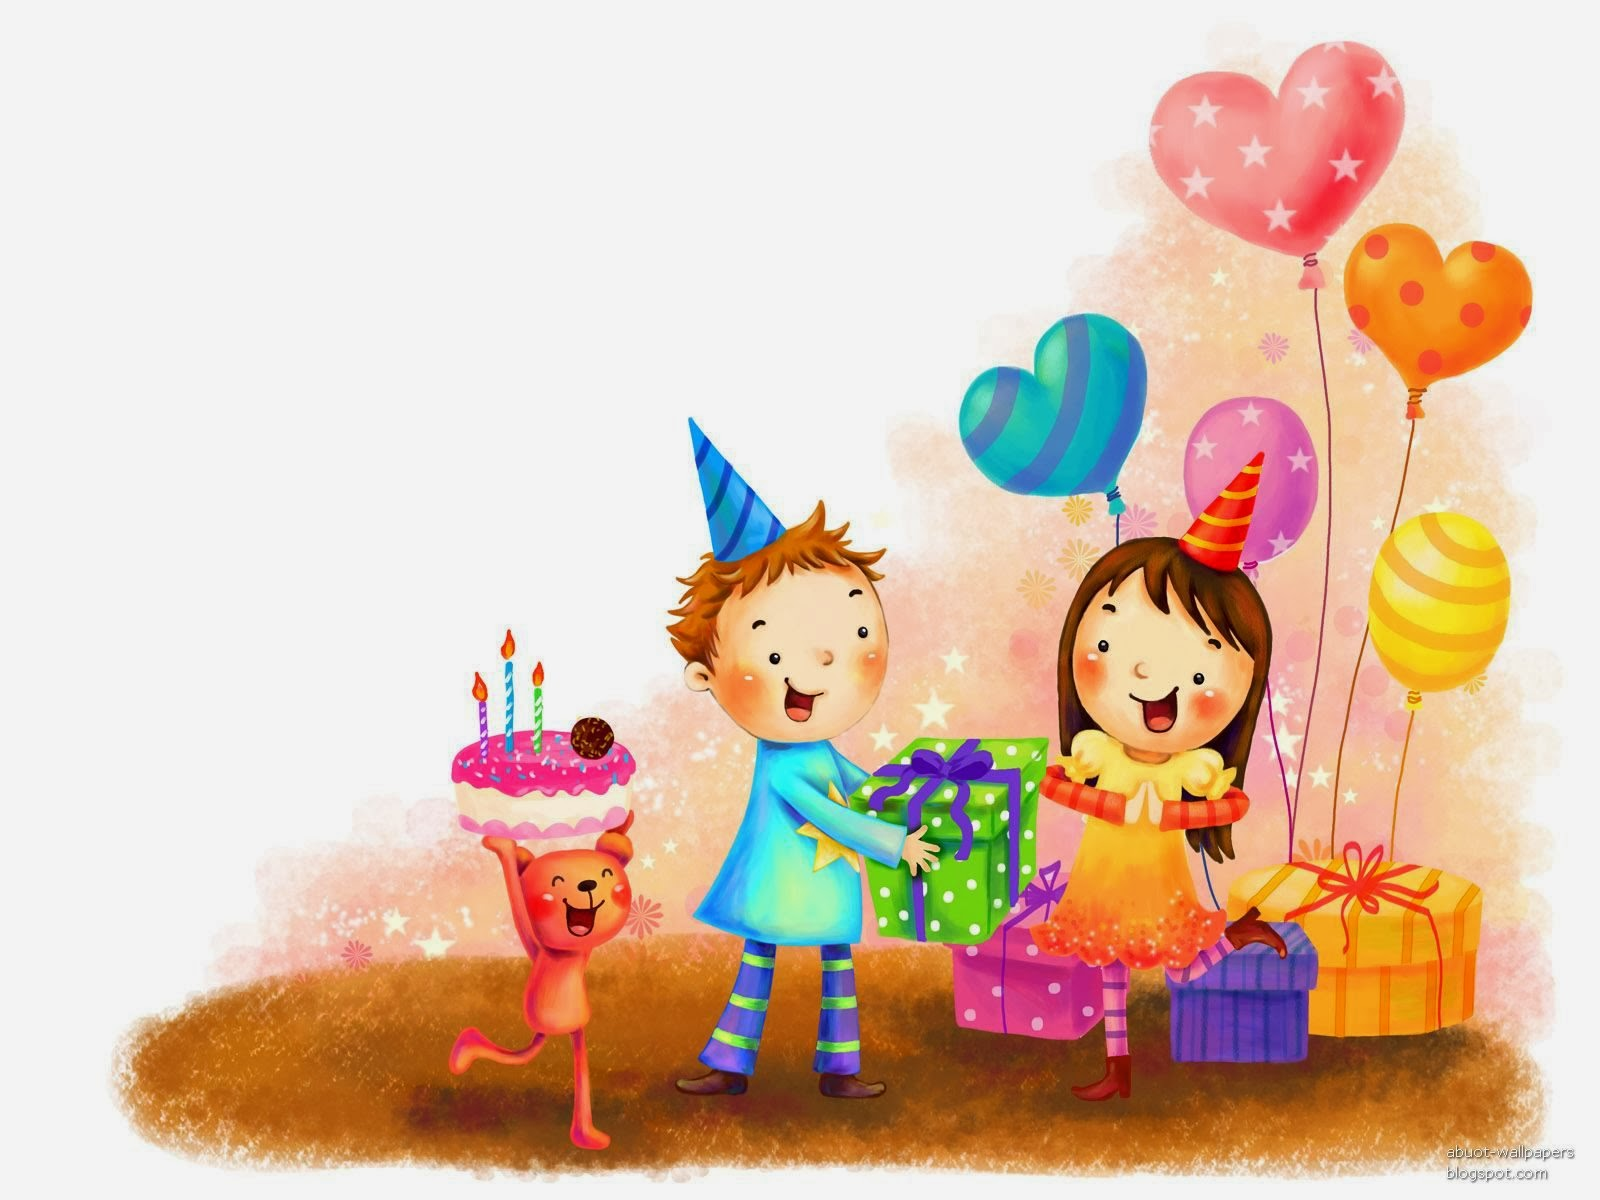 High Quality Cute Happy Birthday Heart Greetings Cards To Wish Birthday To Kids